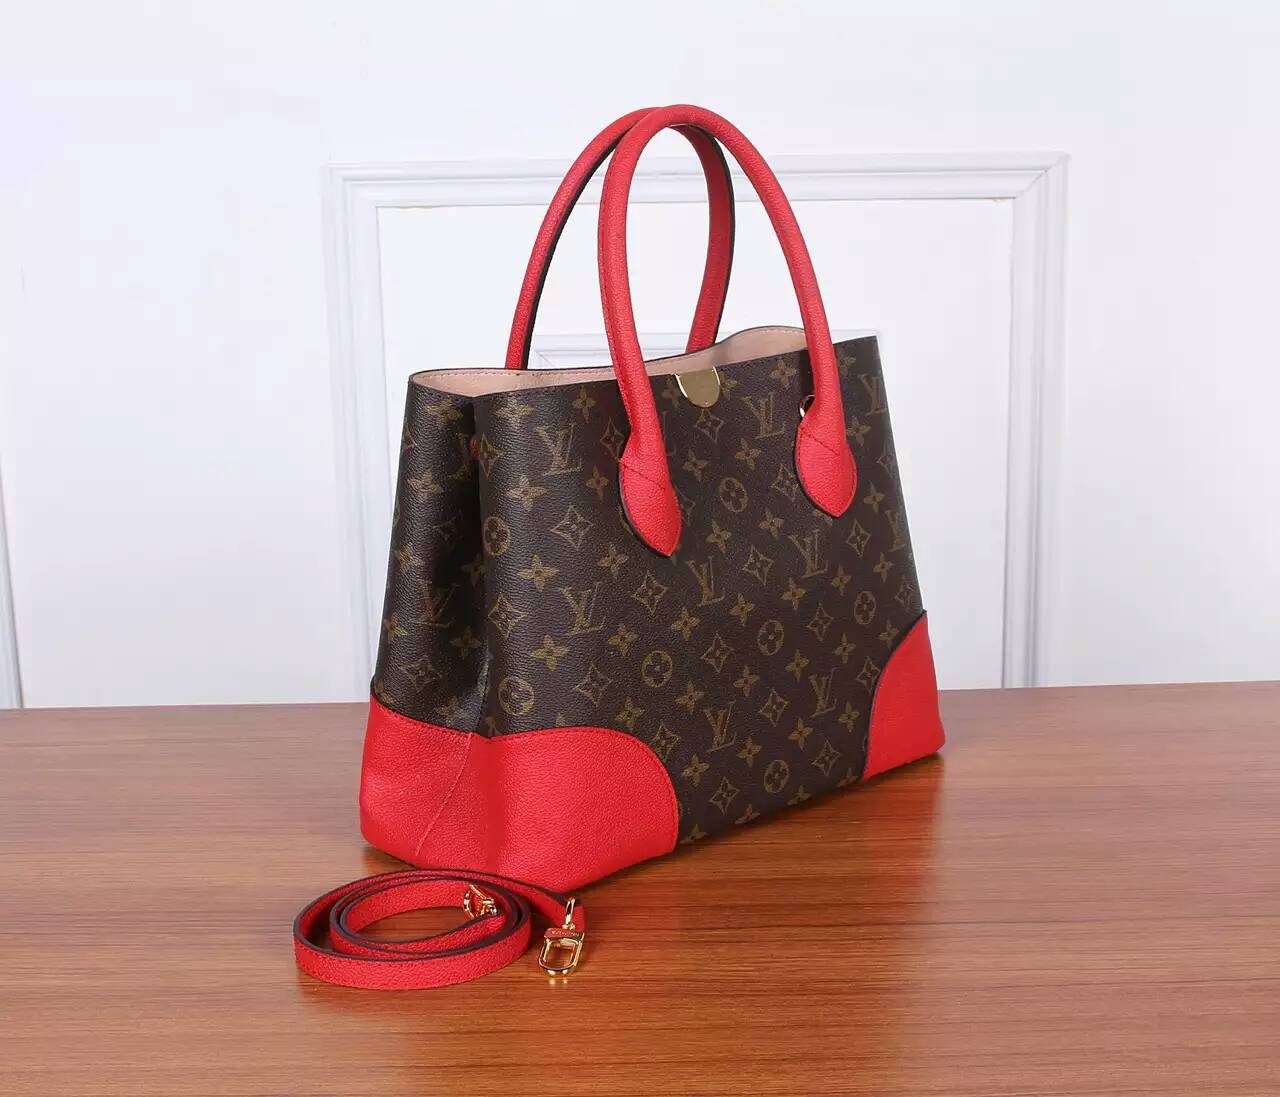 fashion sac louis vuitton solde rouge m41595 w35h26d15